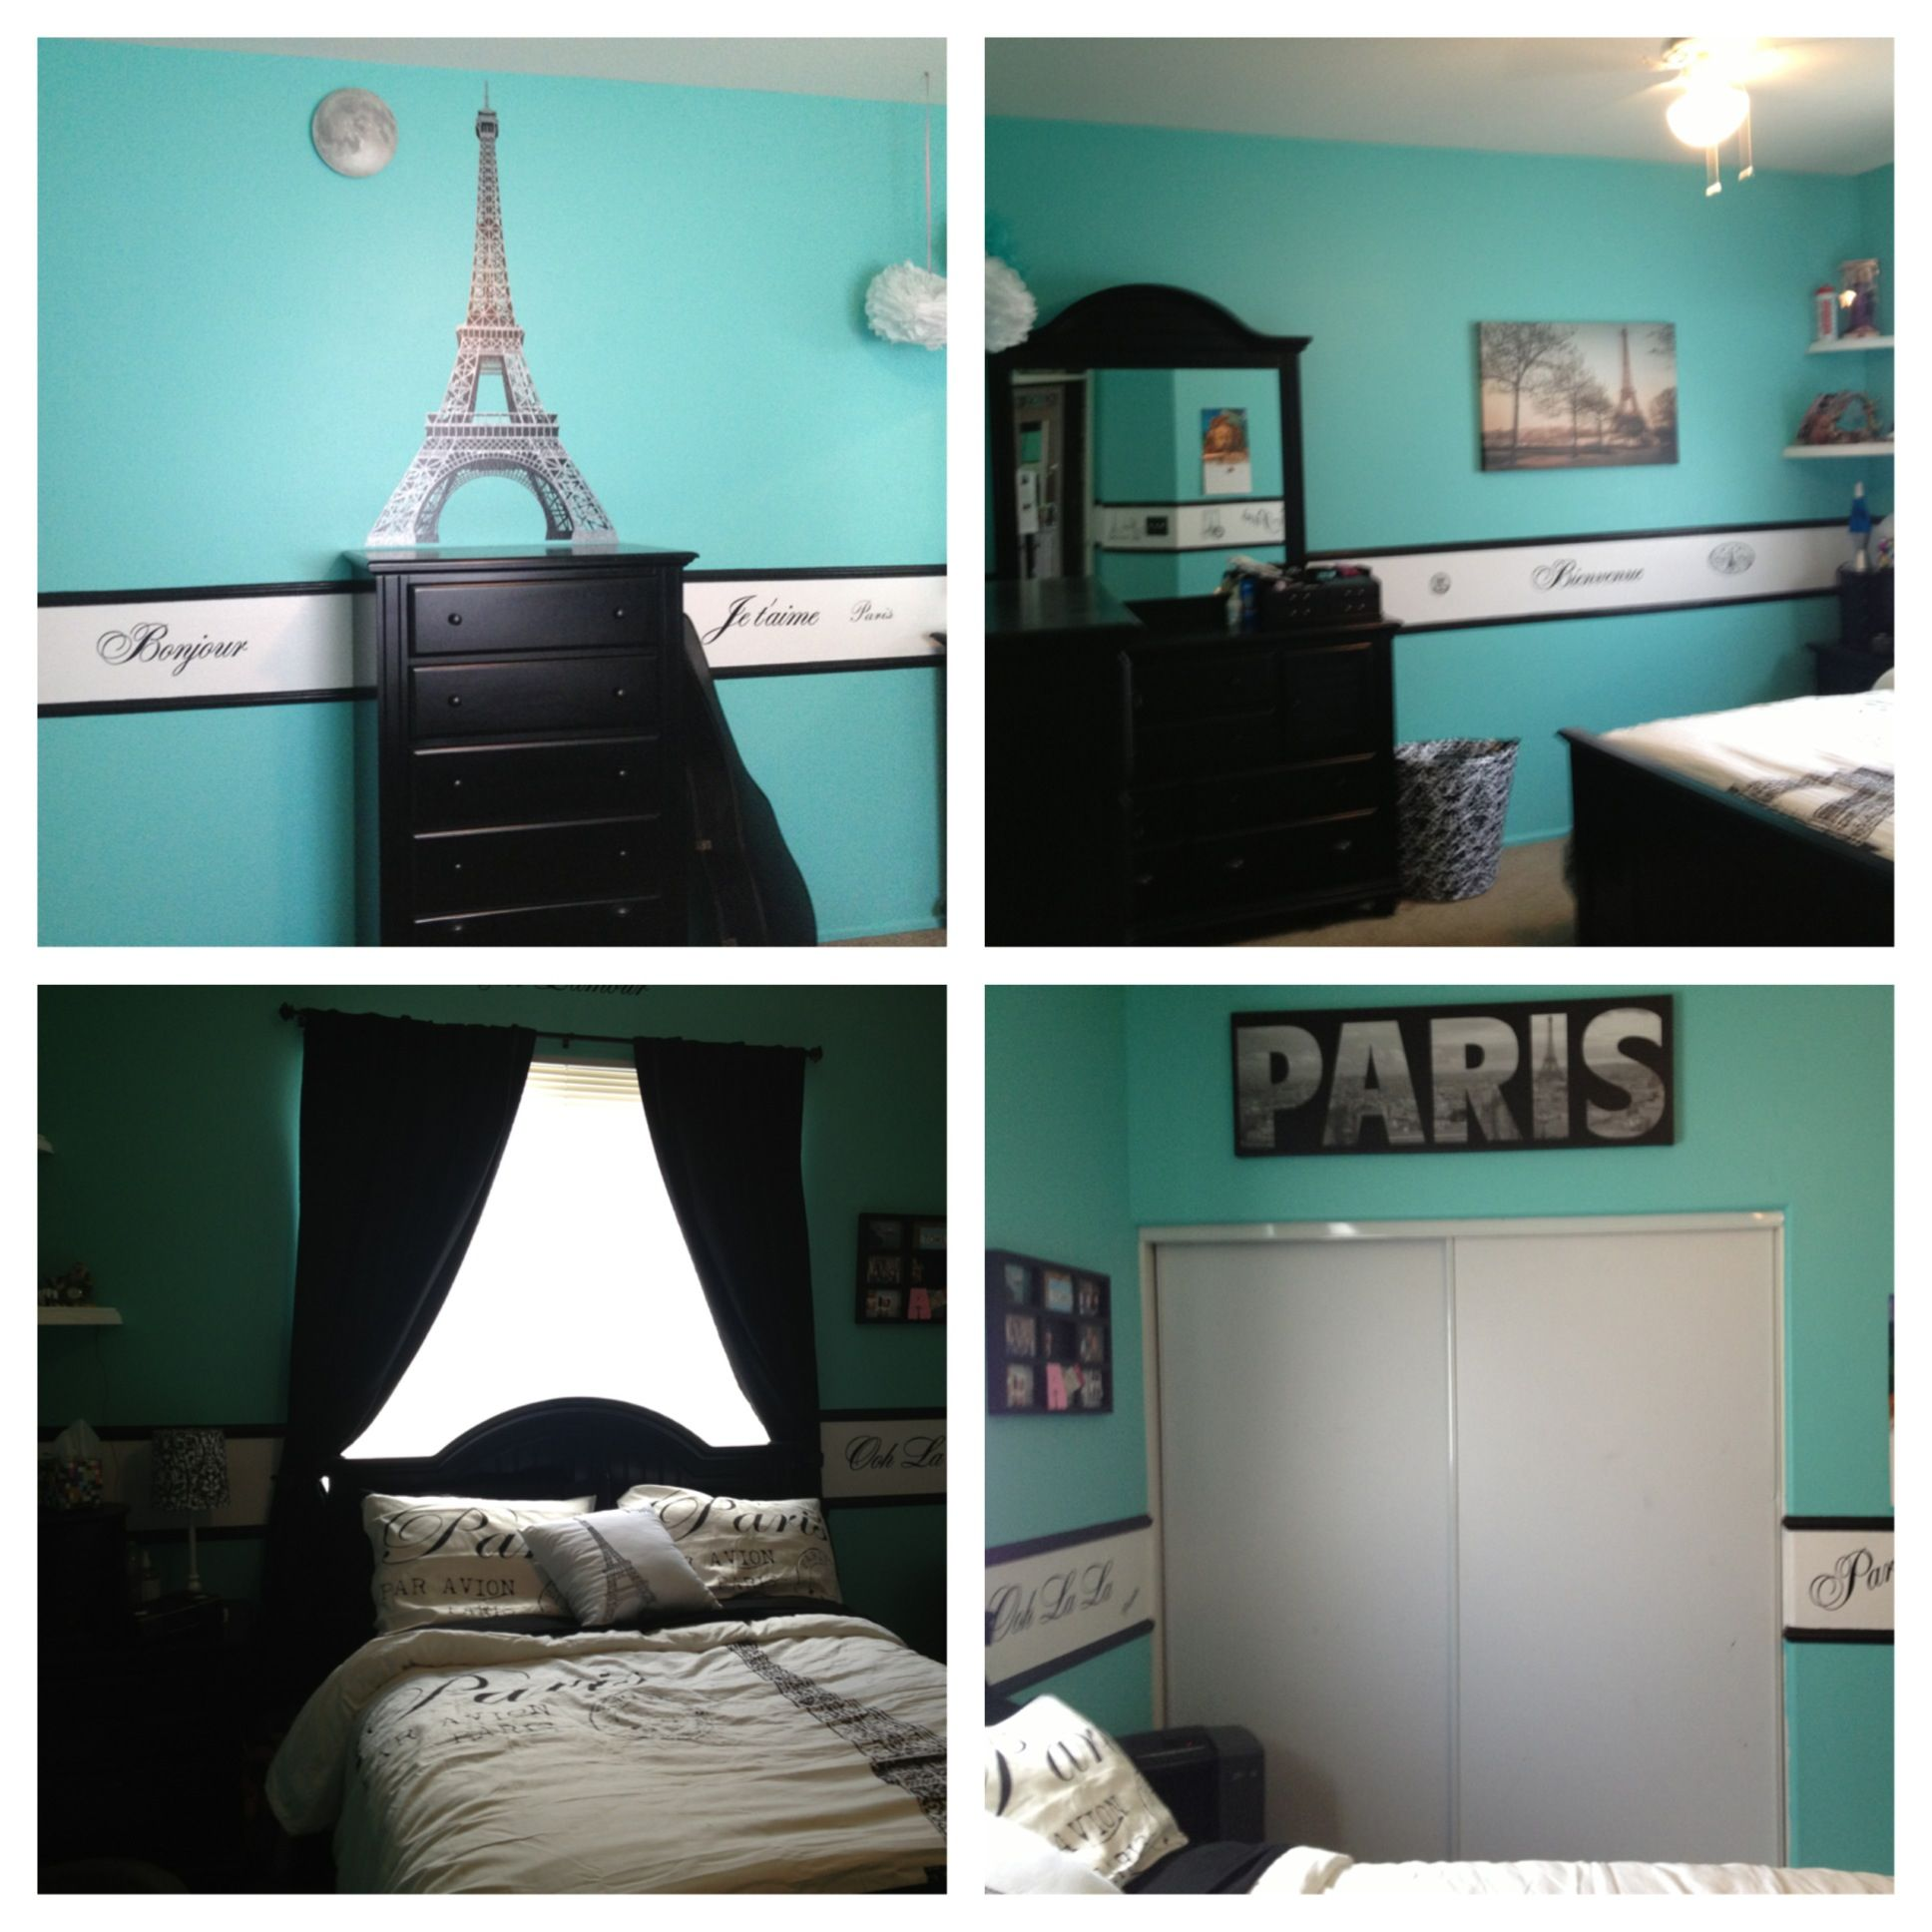 paris theme and tiffany blue bedroom home bedroom decor paris bedroom room decor. Black Bedroom Furniture Sets. Home Design Ideas